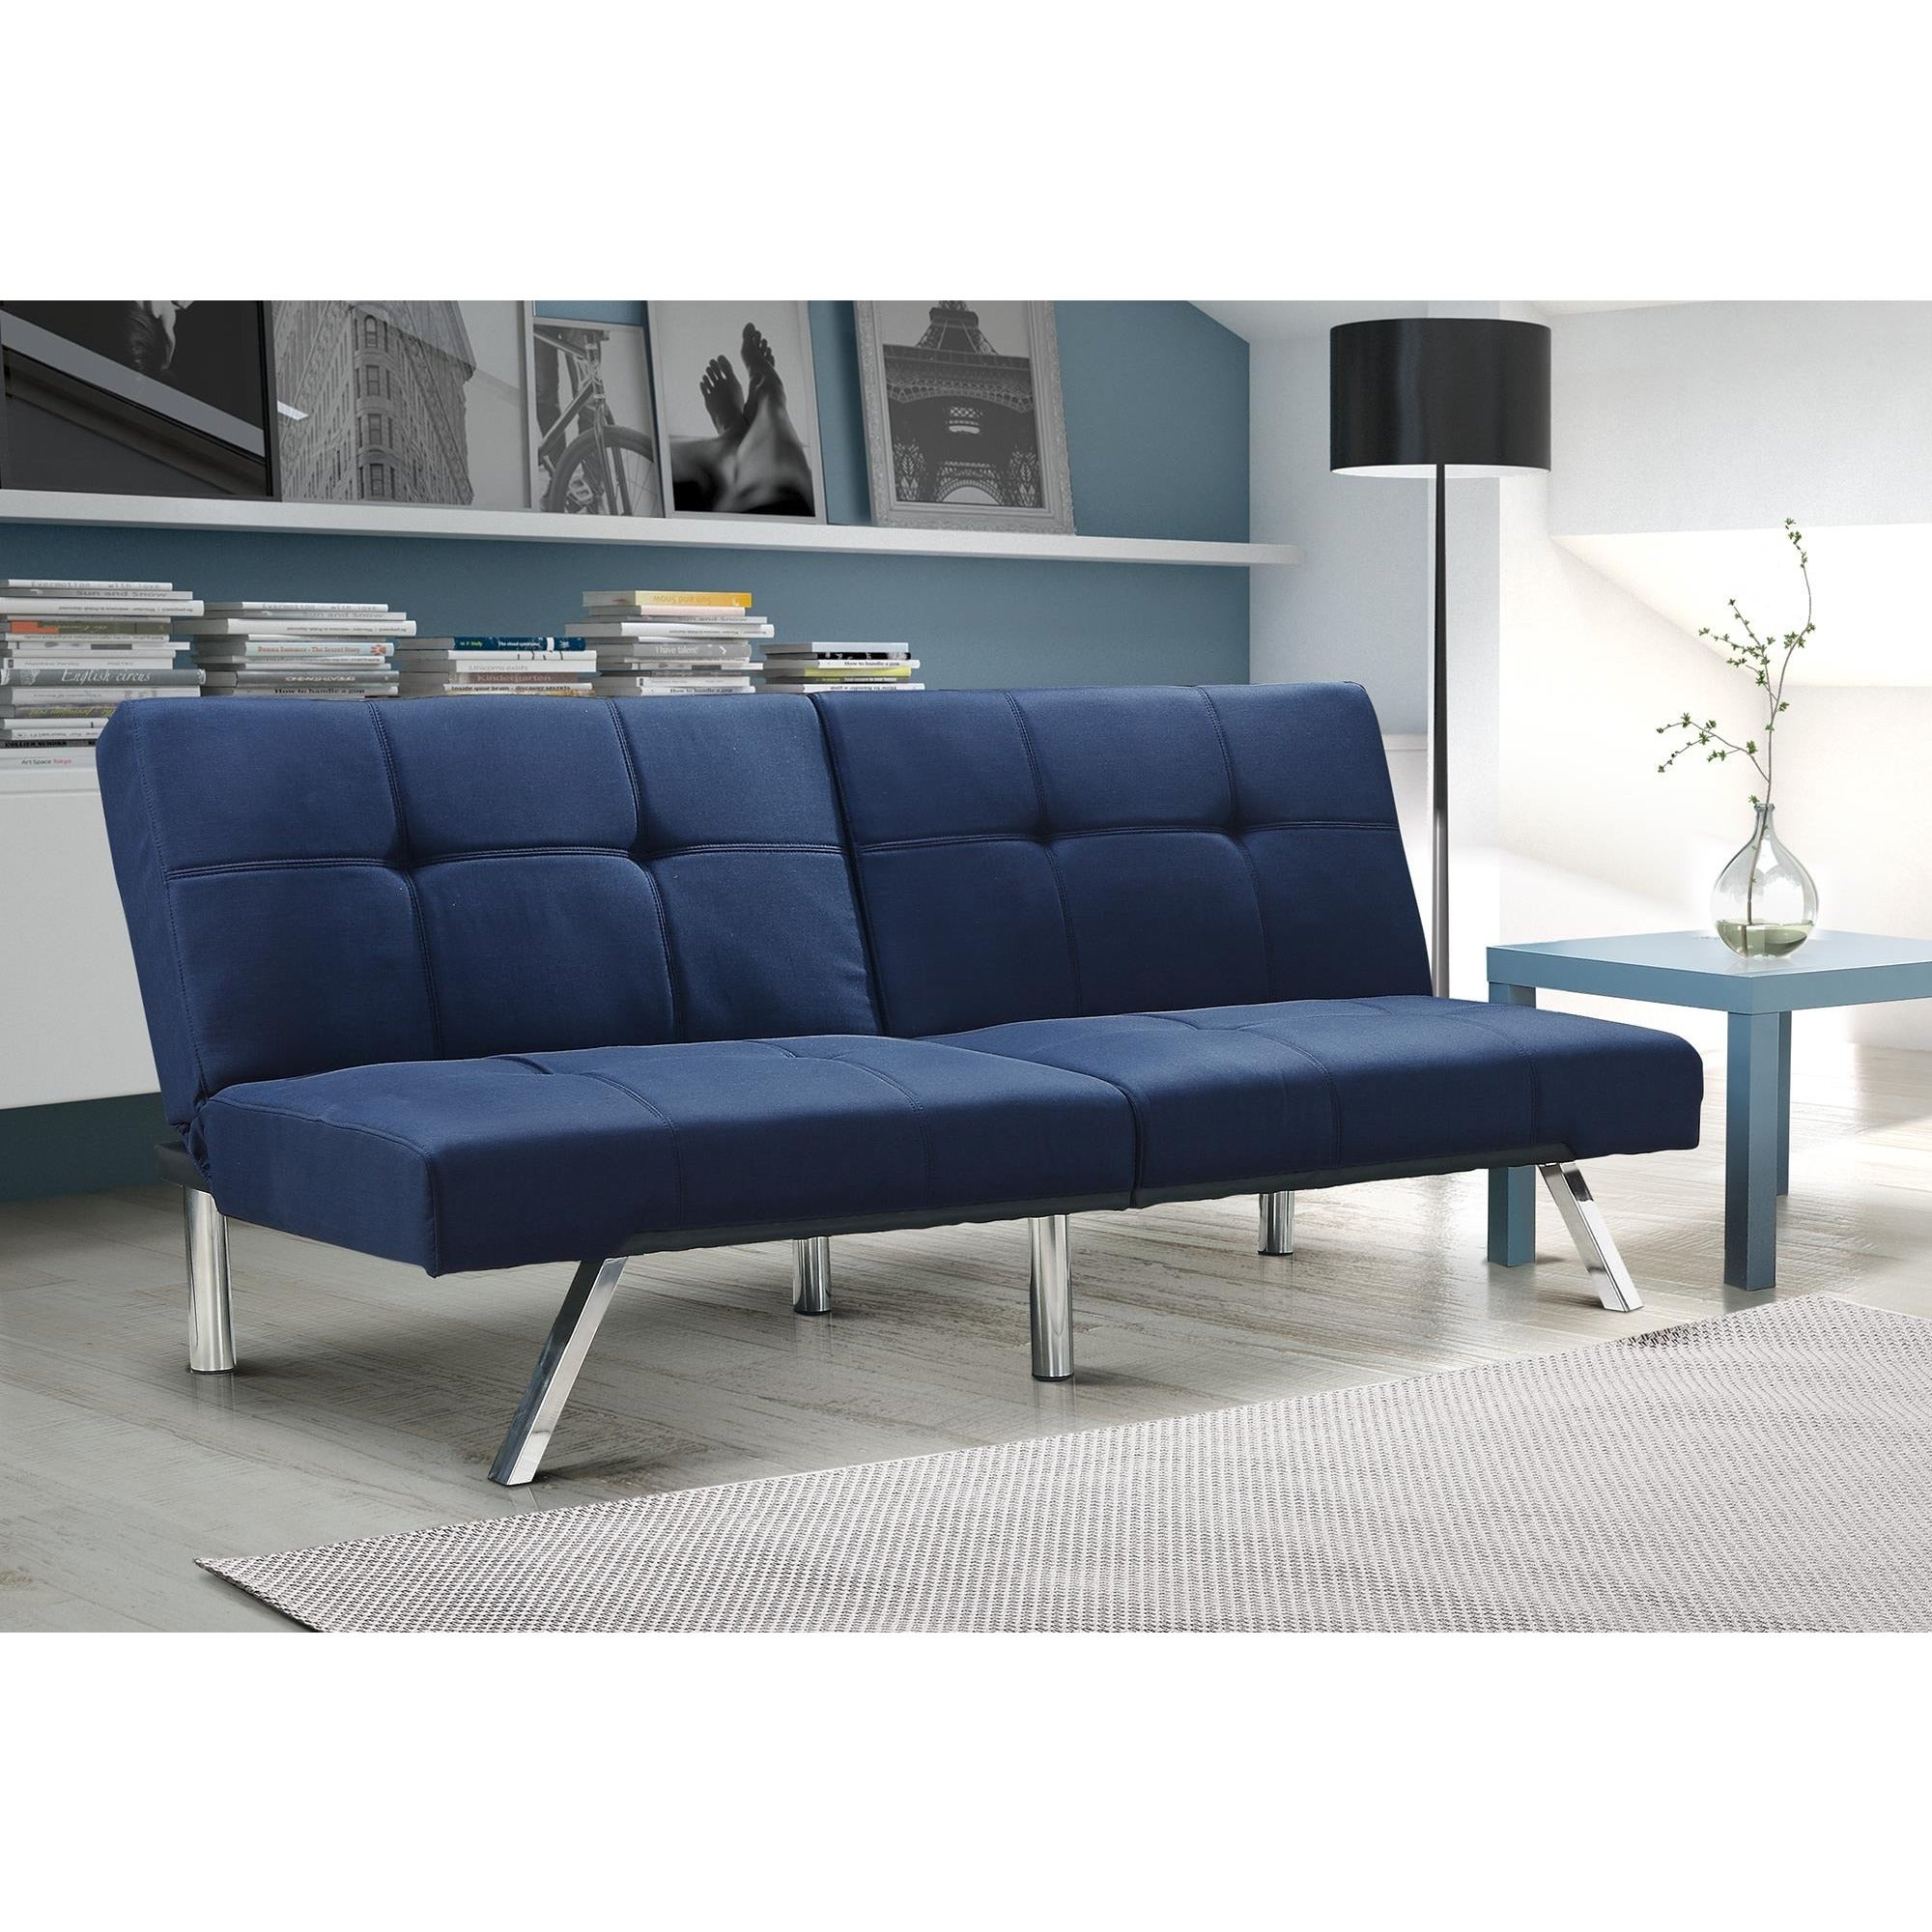 Dhp Layton Navy Linen Futon Free Shipping On Orders Over 45 Com 10317673